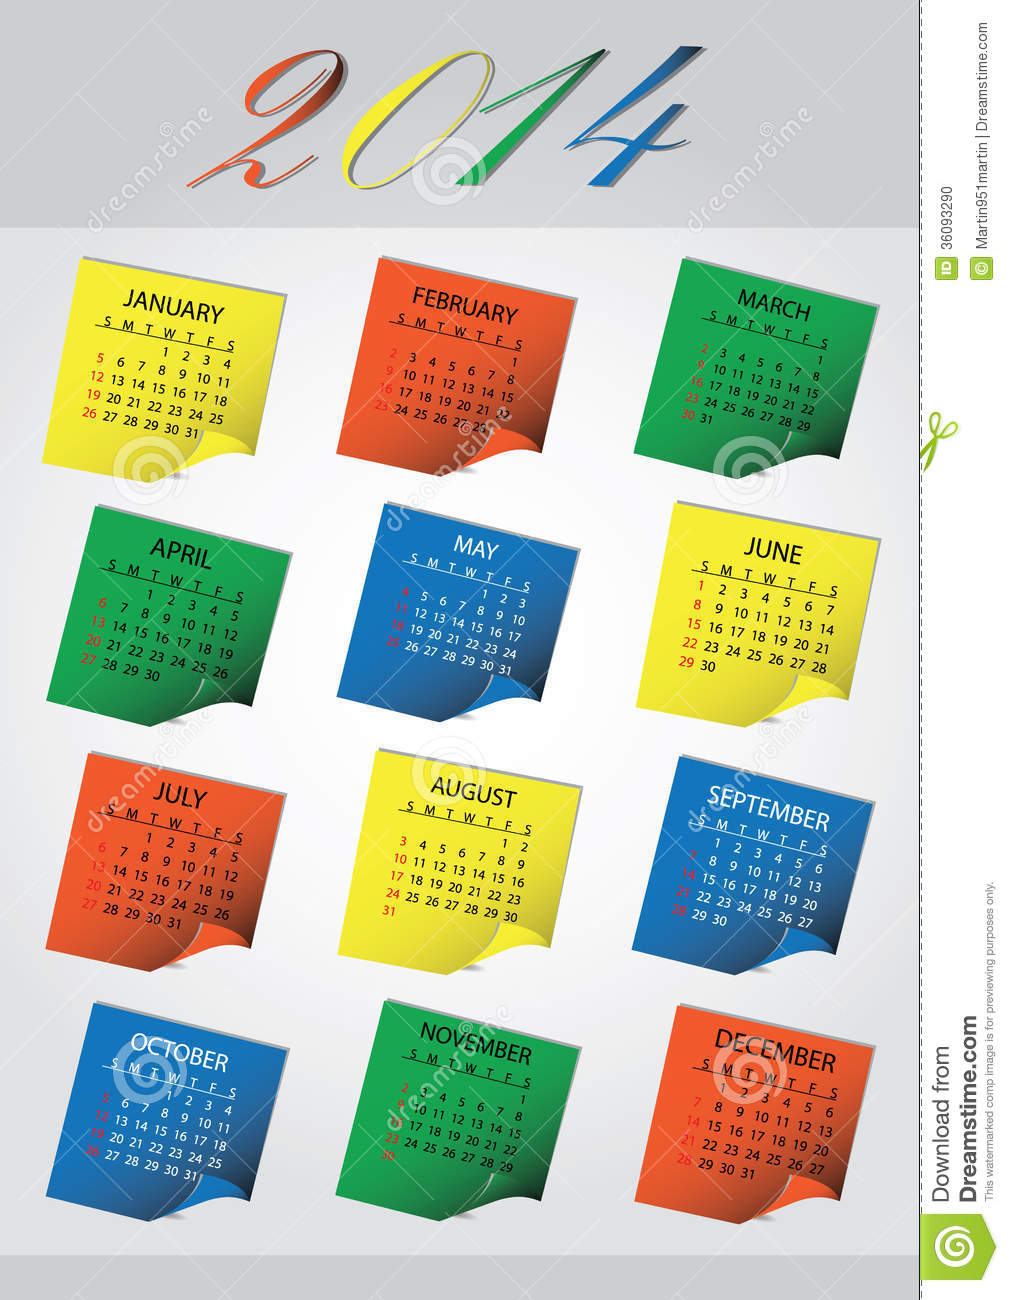 2014 Wall Post It Calendar Eps10 Stock Photo - Image: 36093290